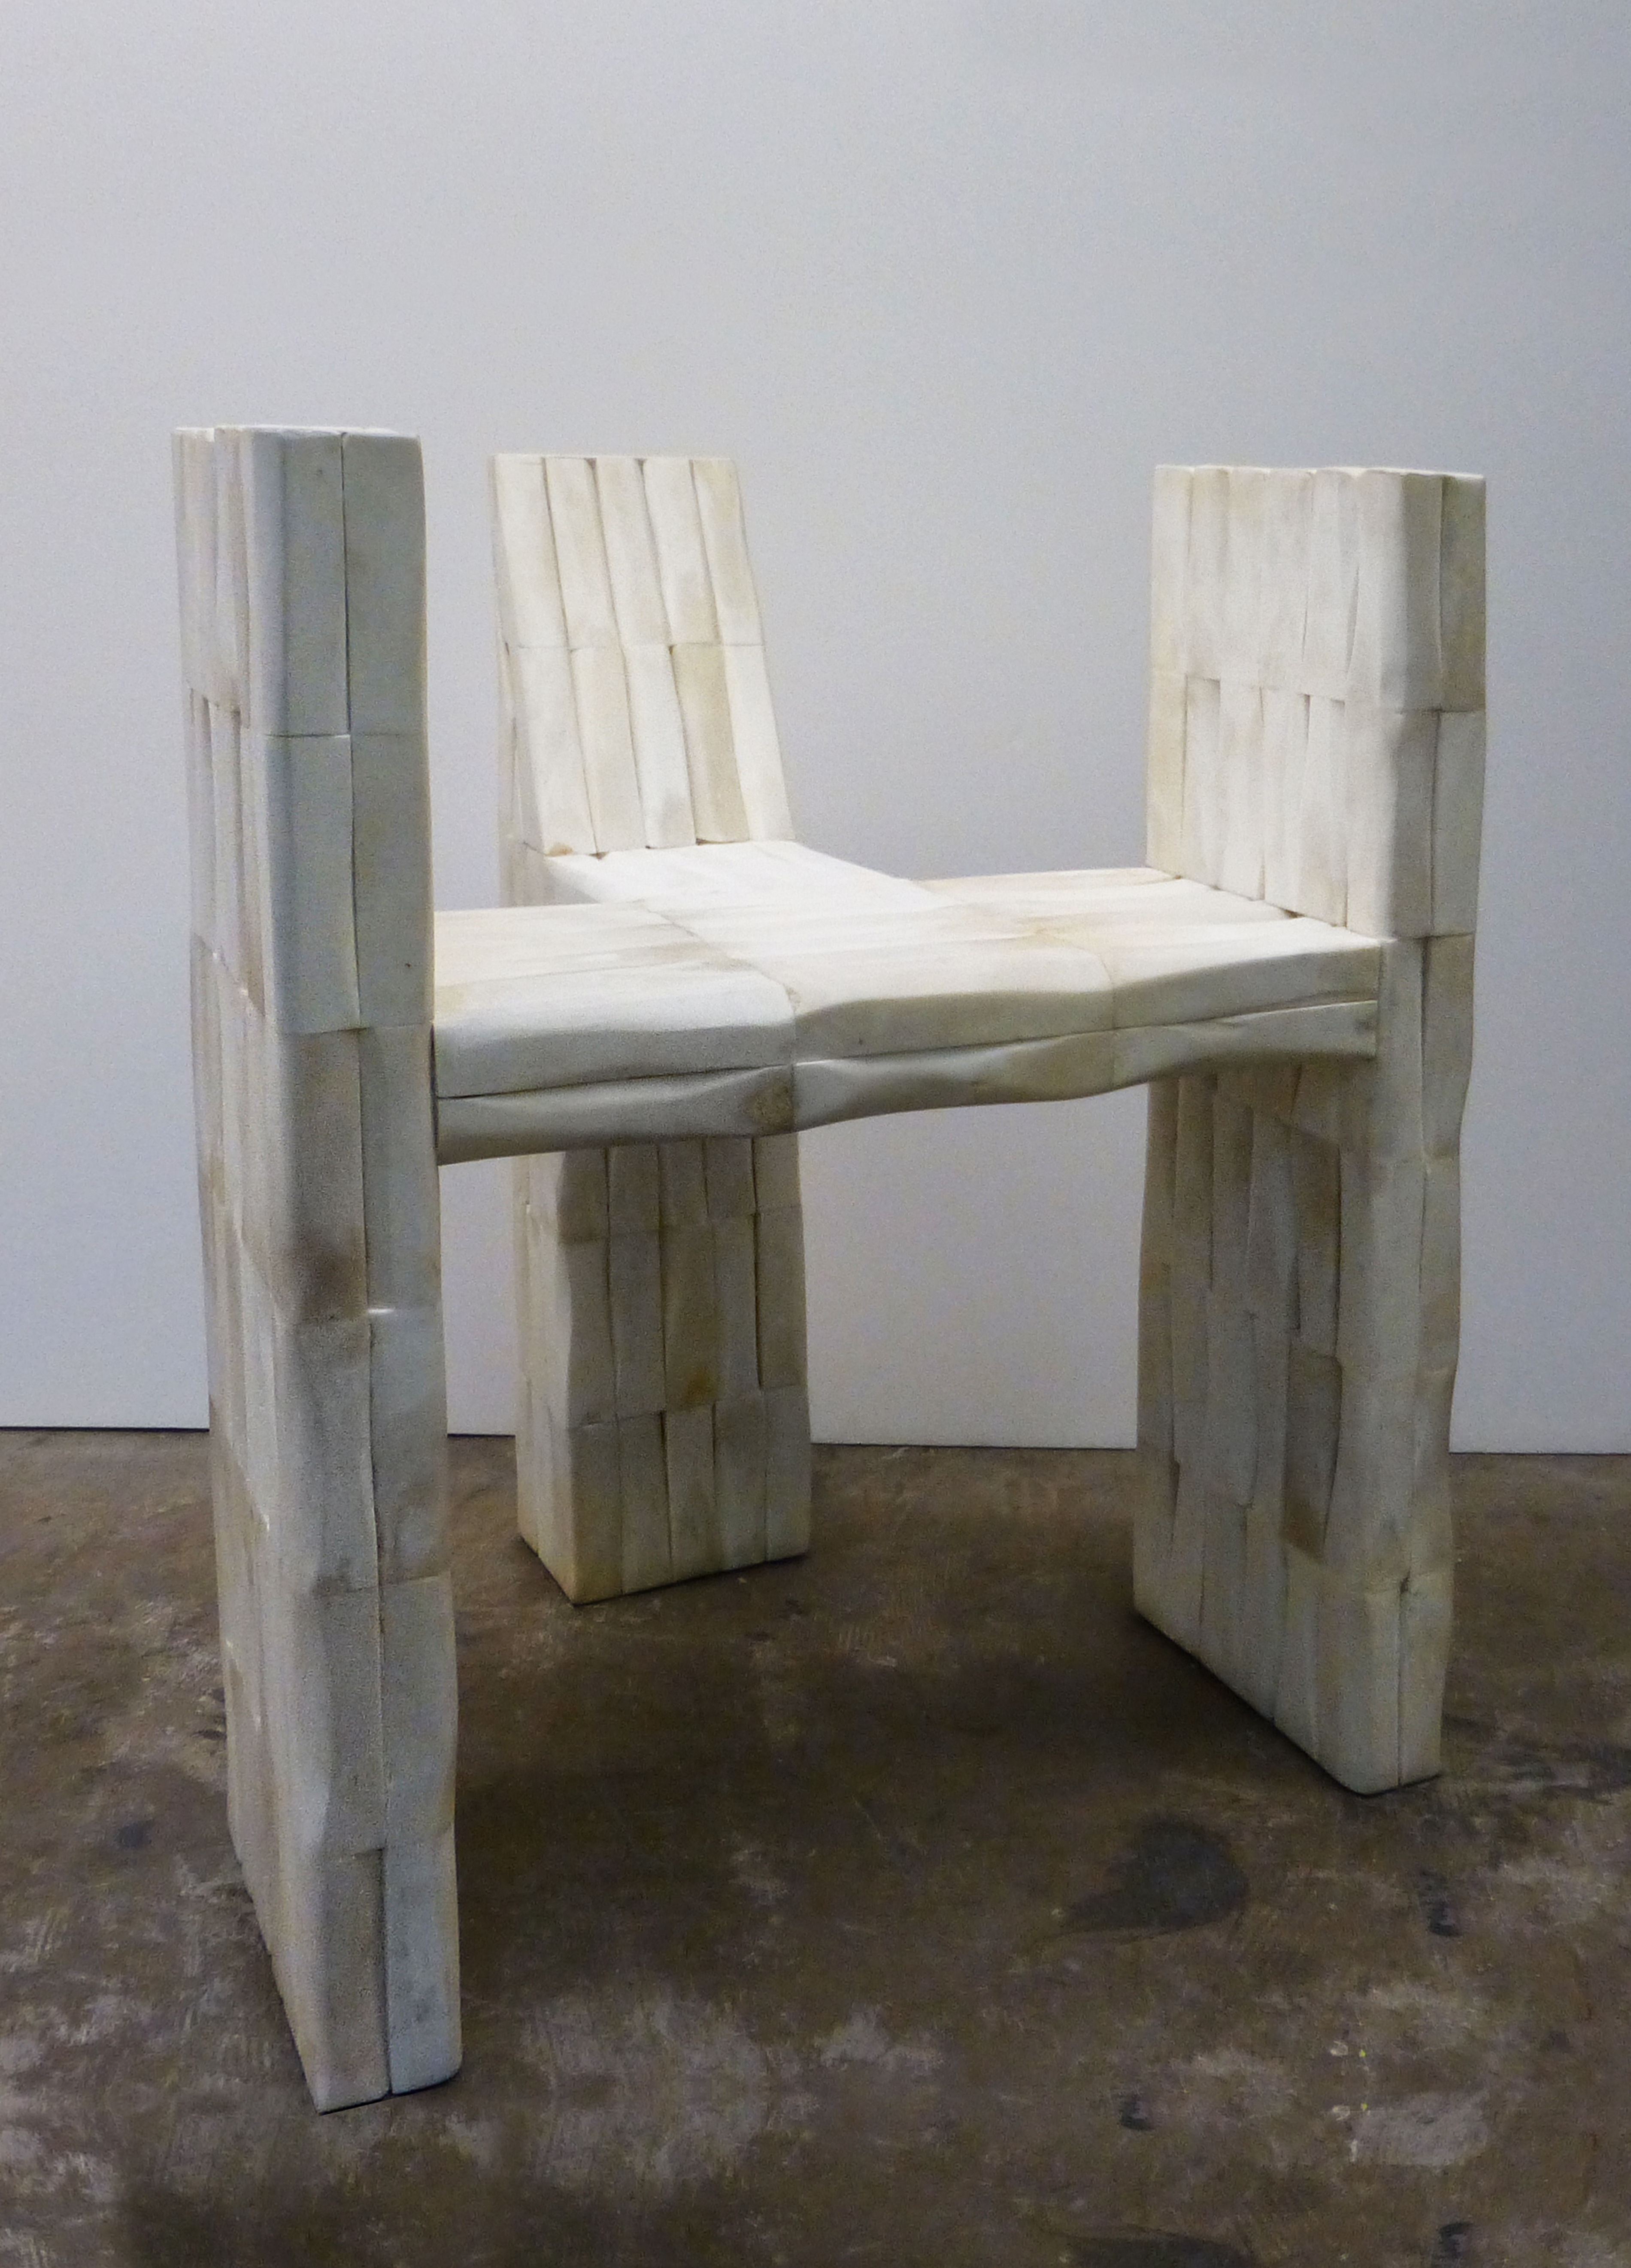 Trident Chair, Cow Bone. Courtesy of Carpenters Workshop Gallery